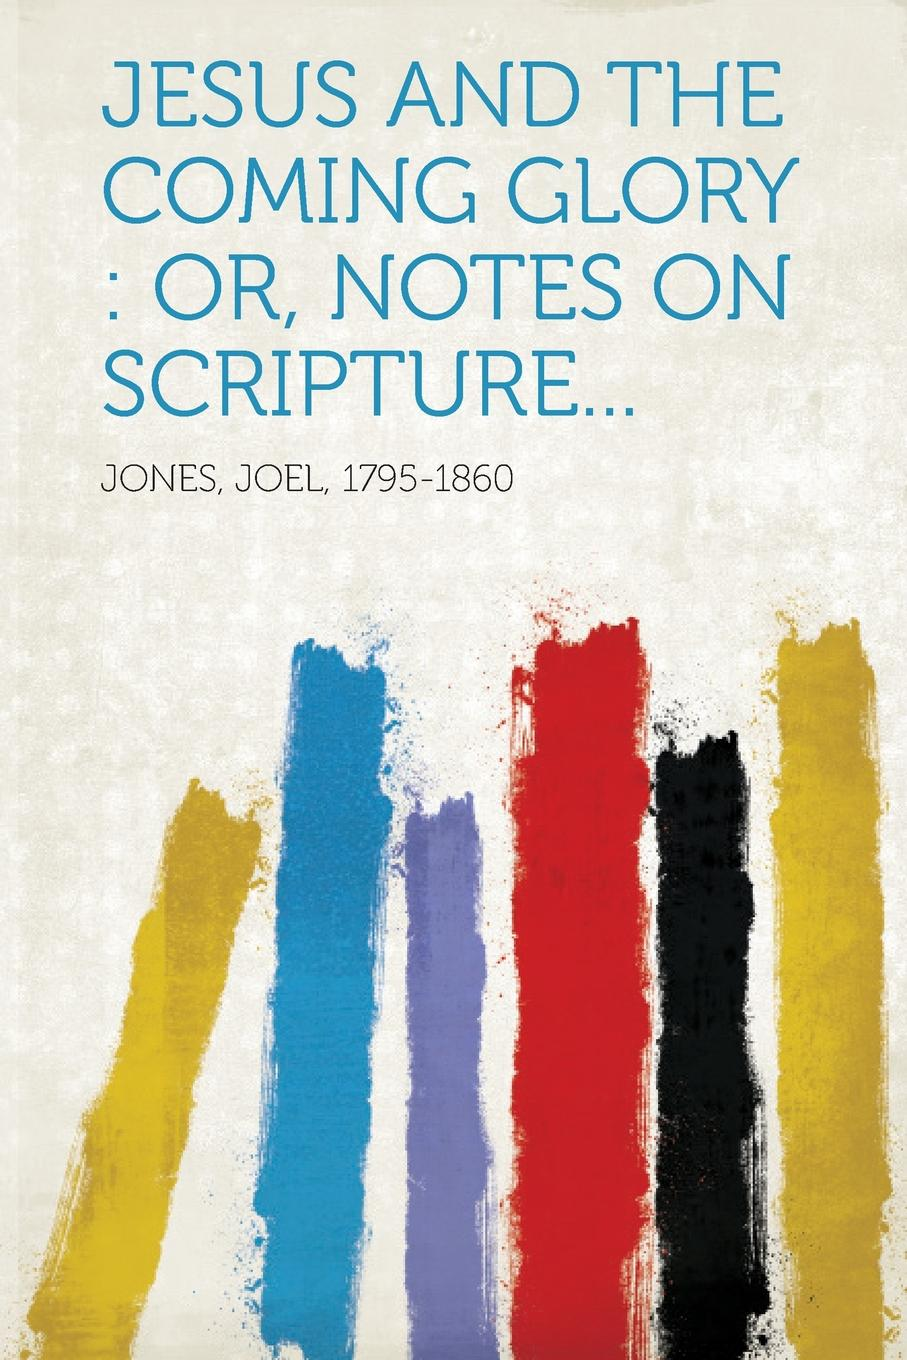 Jesus and the coming glory. or, notes on Scripture...